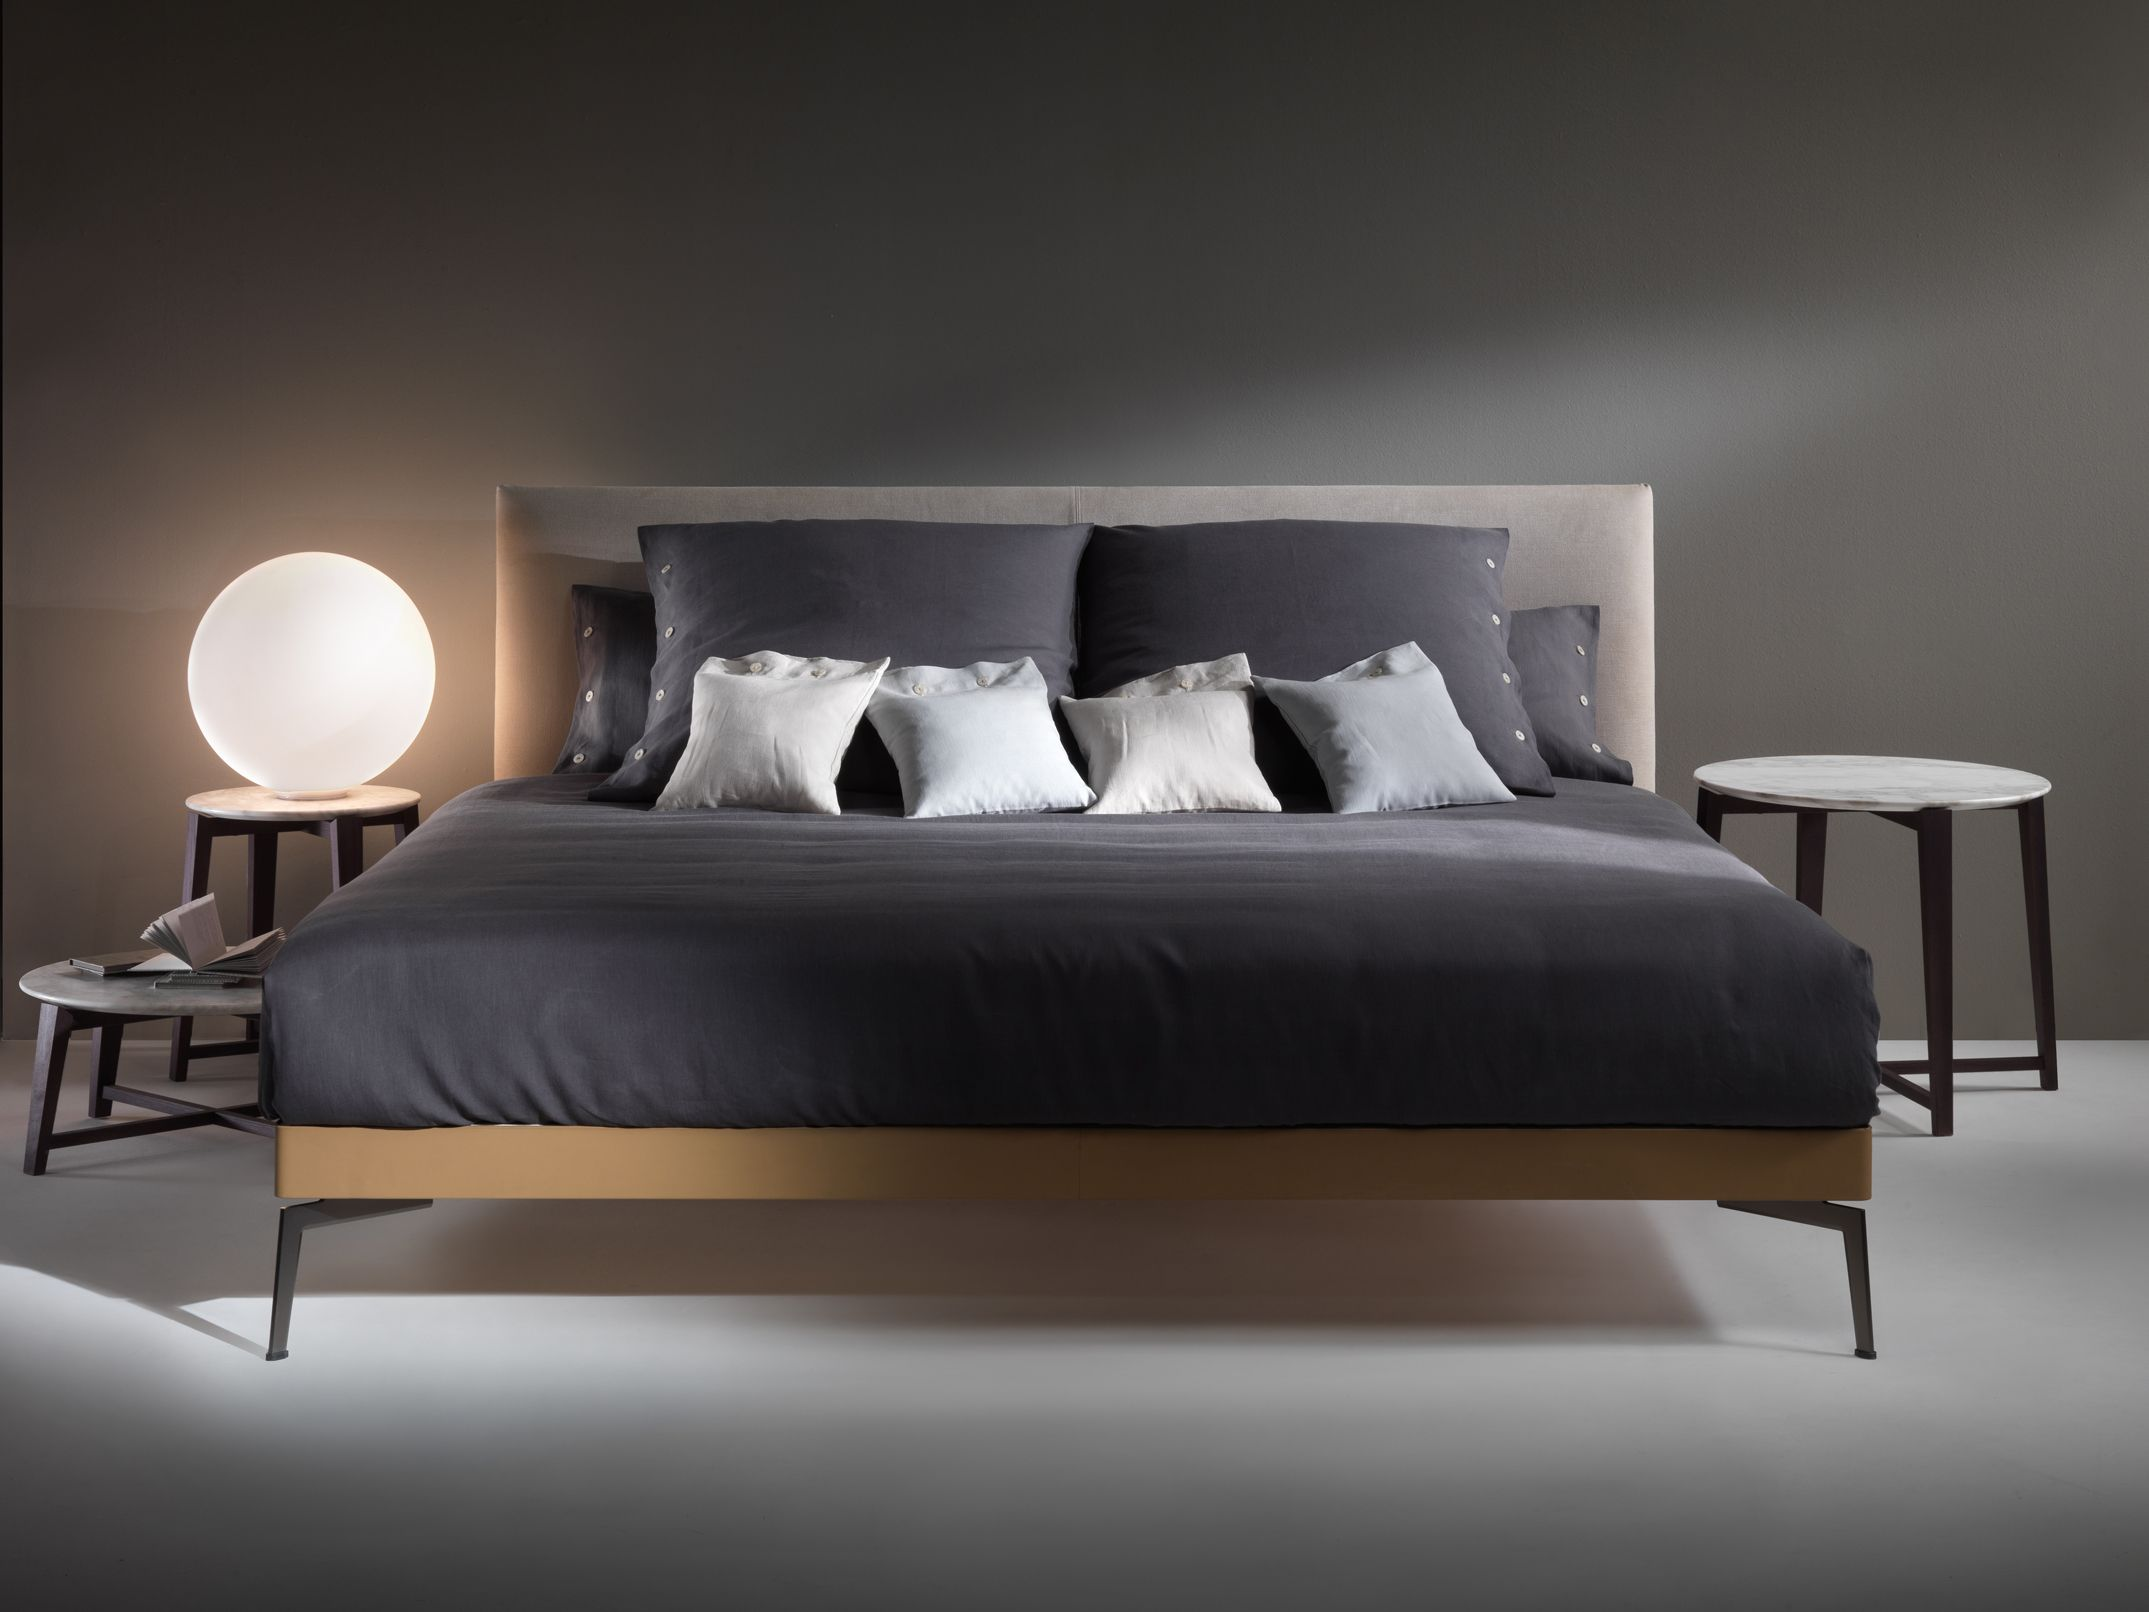 flexform beds Google Search Bed furniture, Bed design